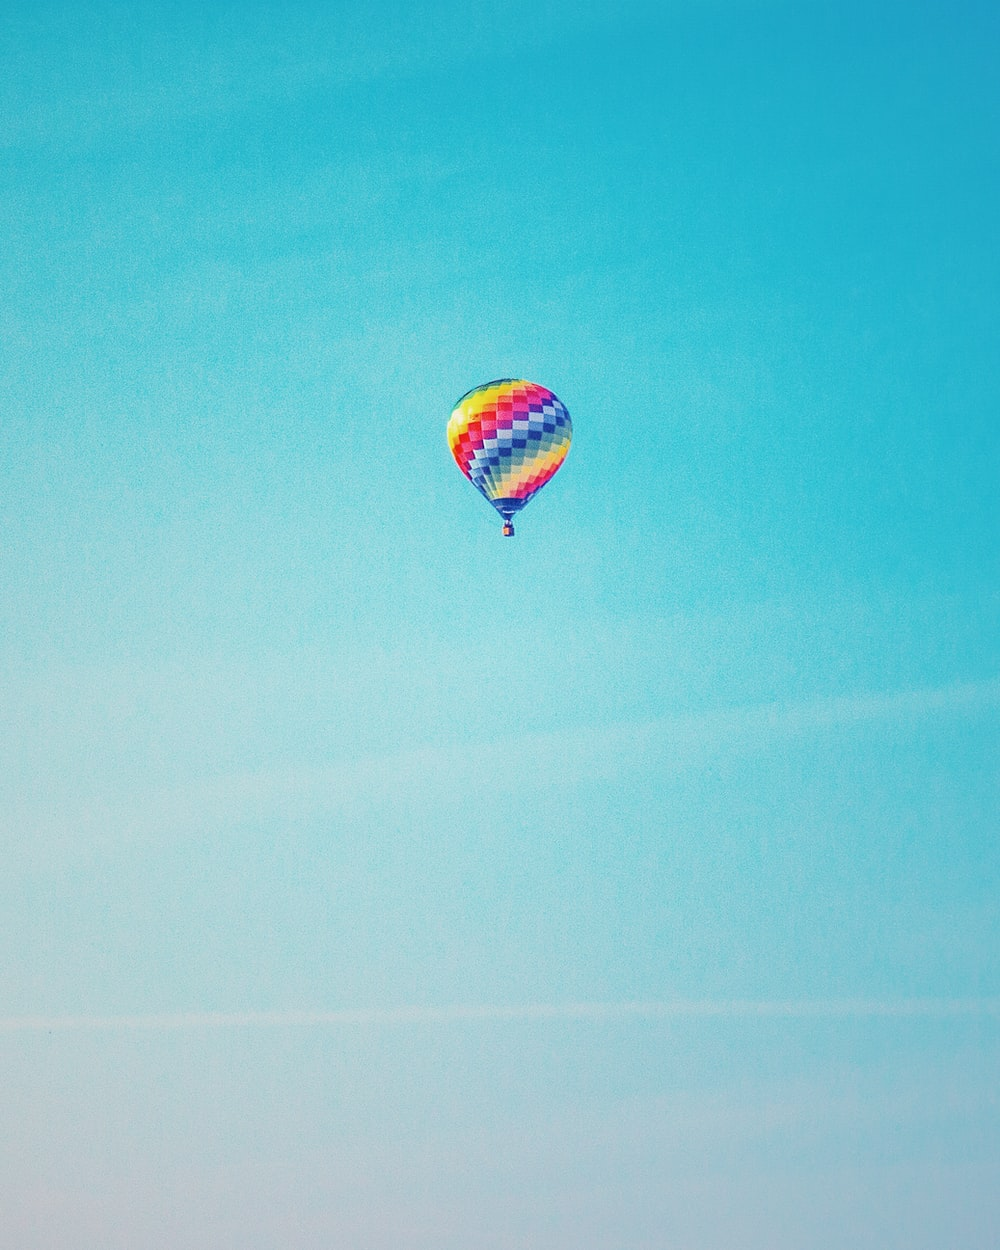 multicolored hot air balloon under clear blue sky